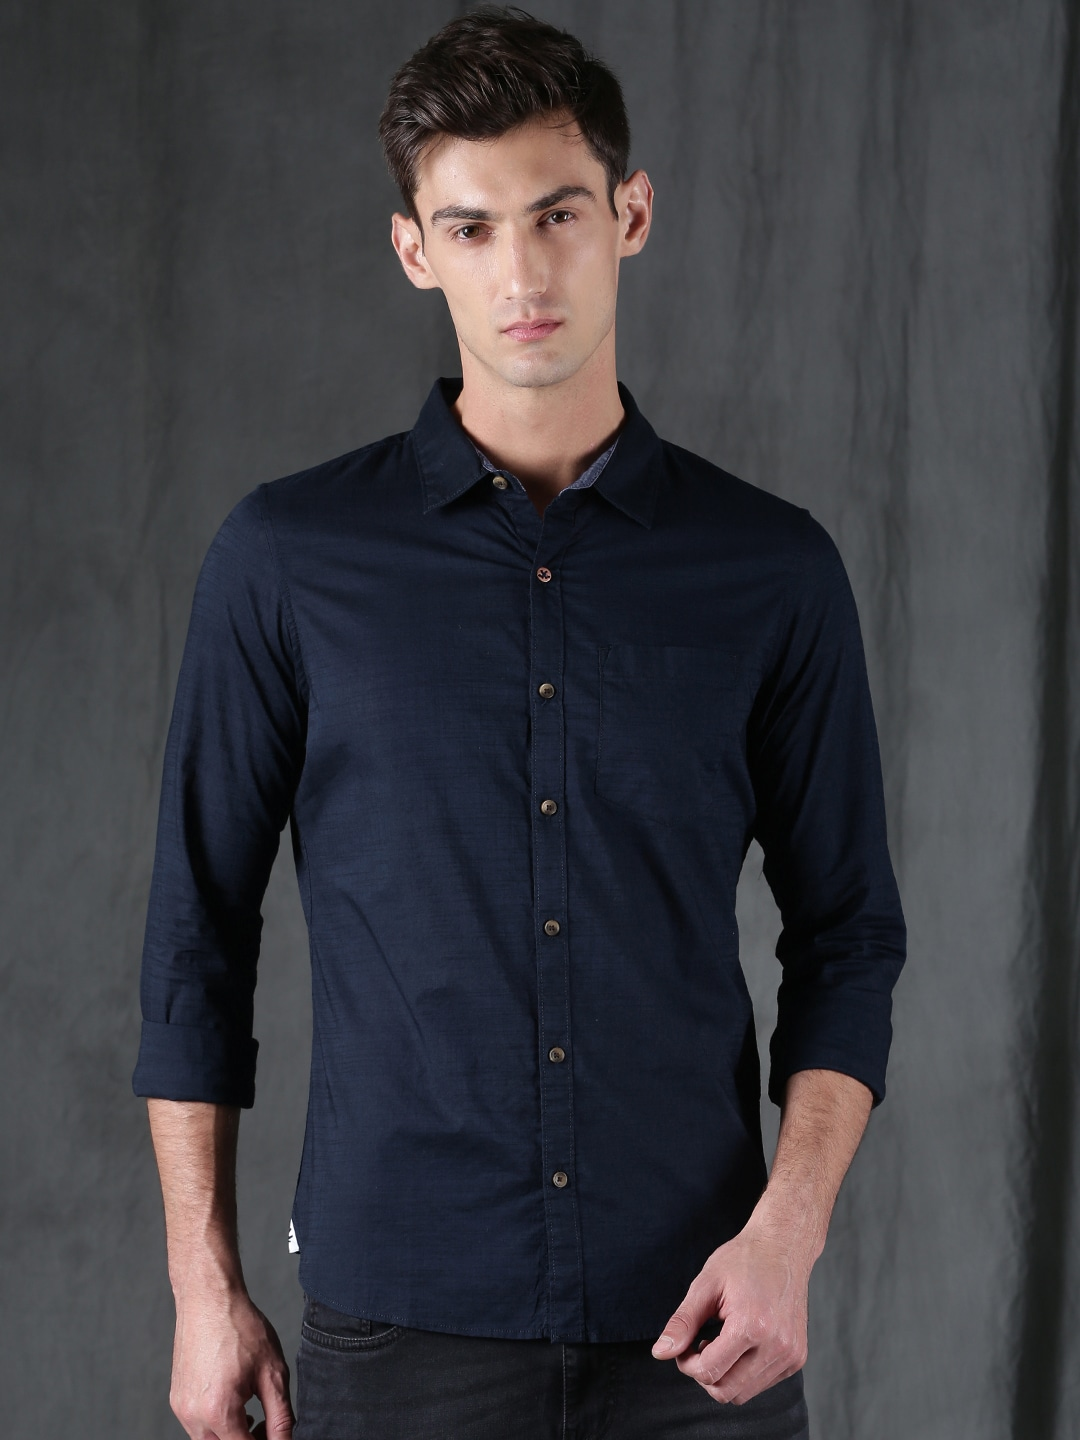 ddfac4d05ab27 Wrogn - Buy from Wrogn Online Fashion Store